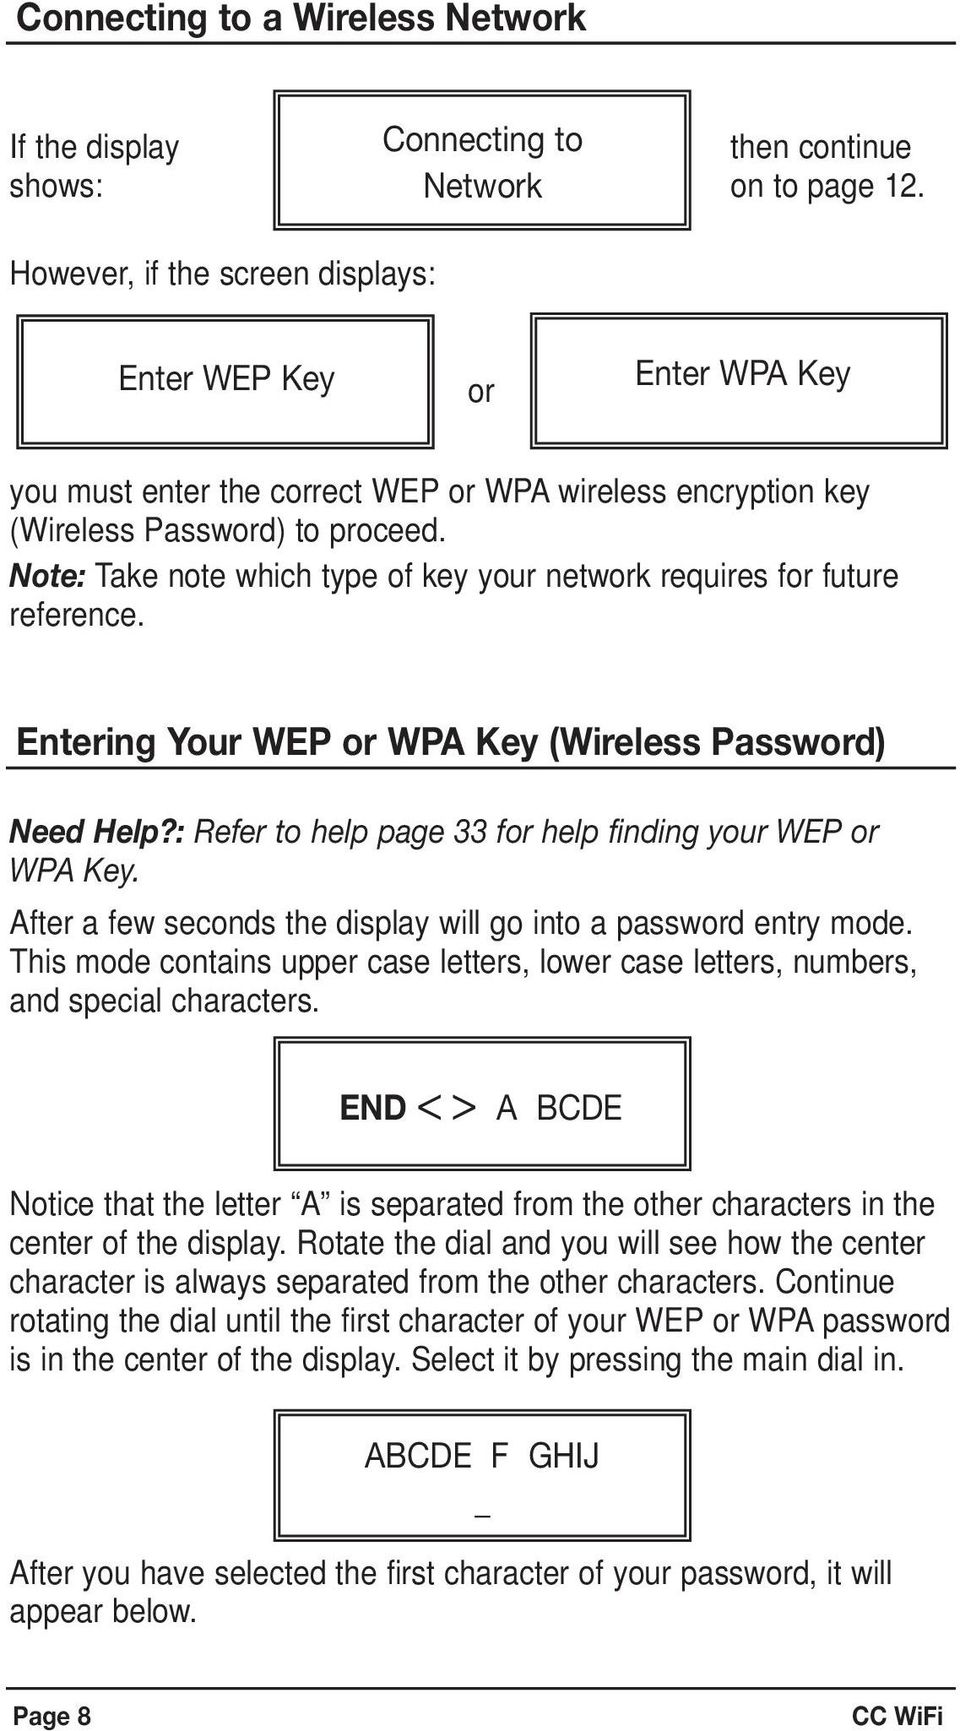 Note: Take note which type of key your network requires for future reference. Entering Your WEP or WPA Key (Wireless Password) Need Help?: Refer to help page 33 for help finding your WEP or WPA Key.